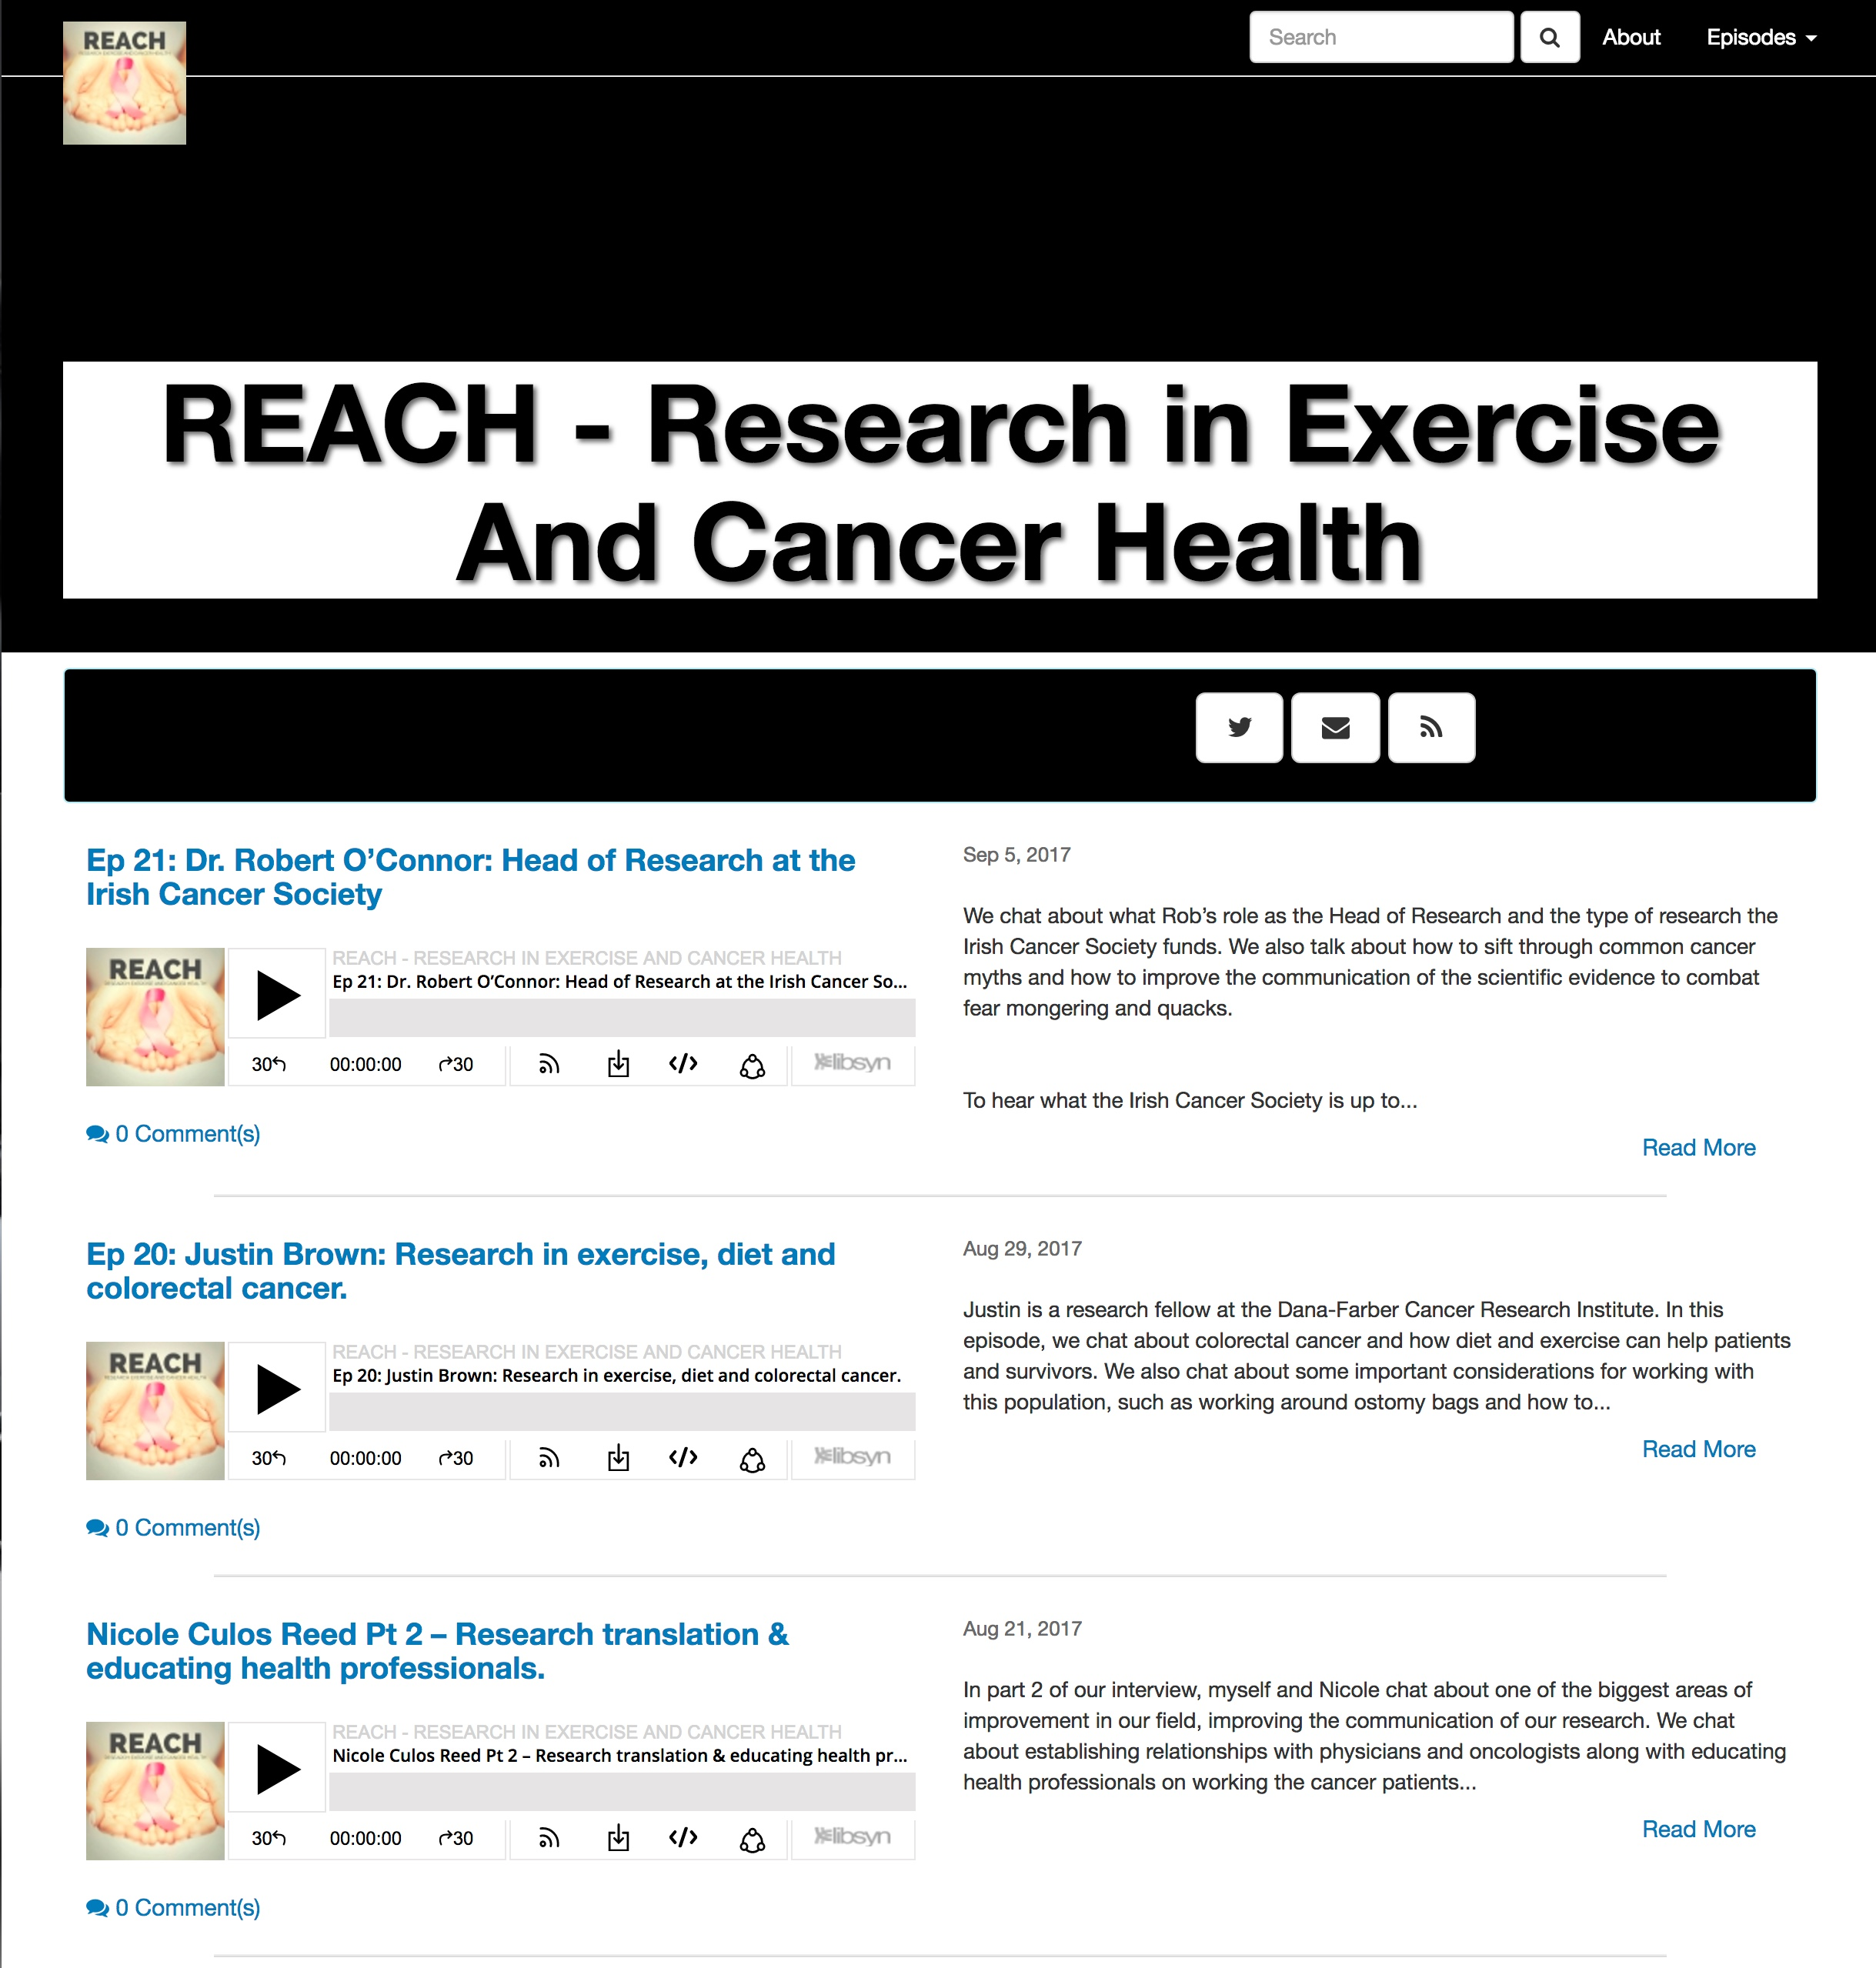 Reach - Research in Exercise and Cancer Health -